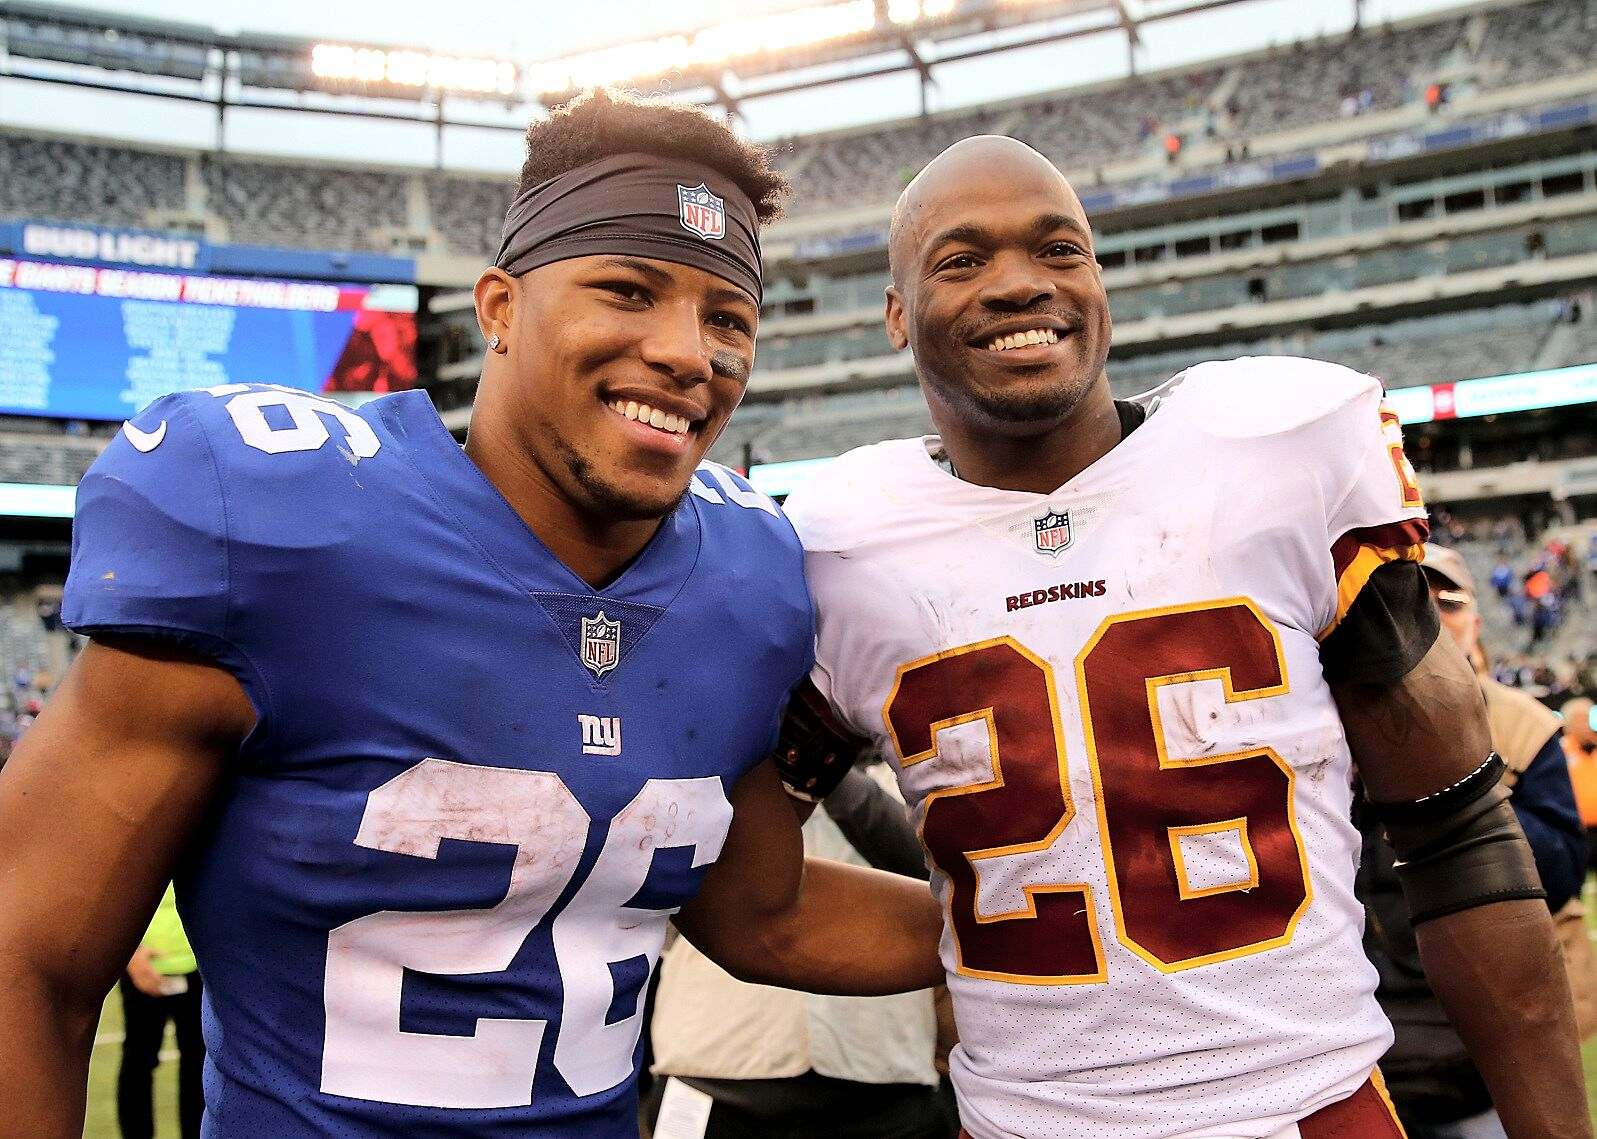 Redskins vs. Giants: 3 studs from Sunday's victory